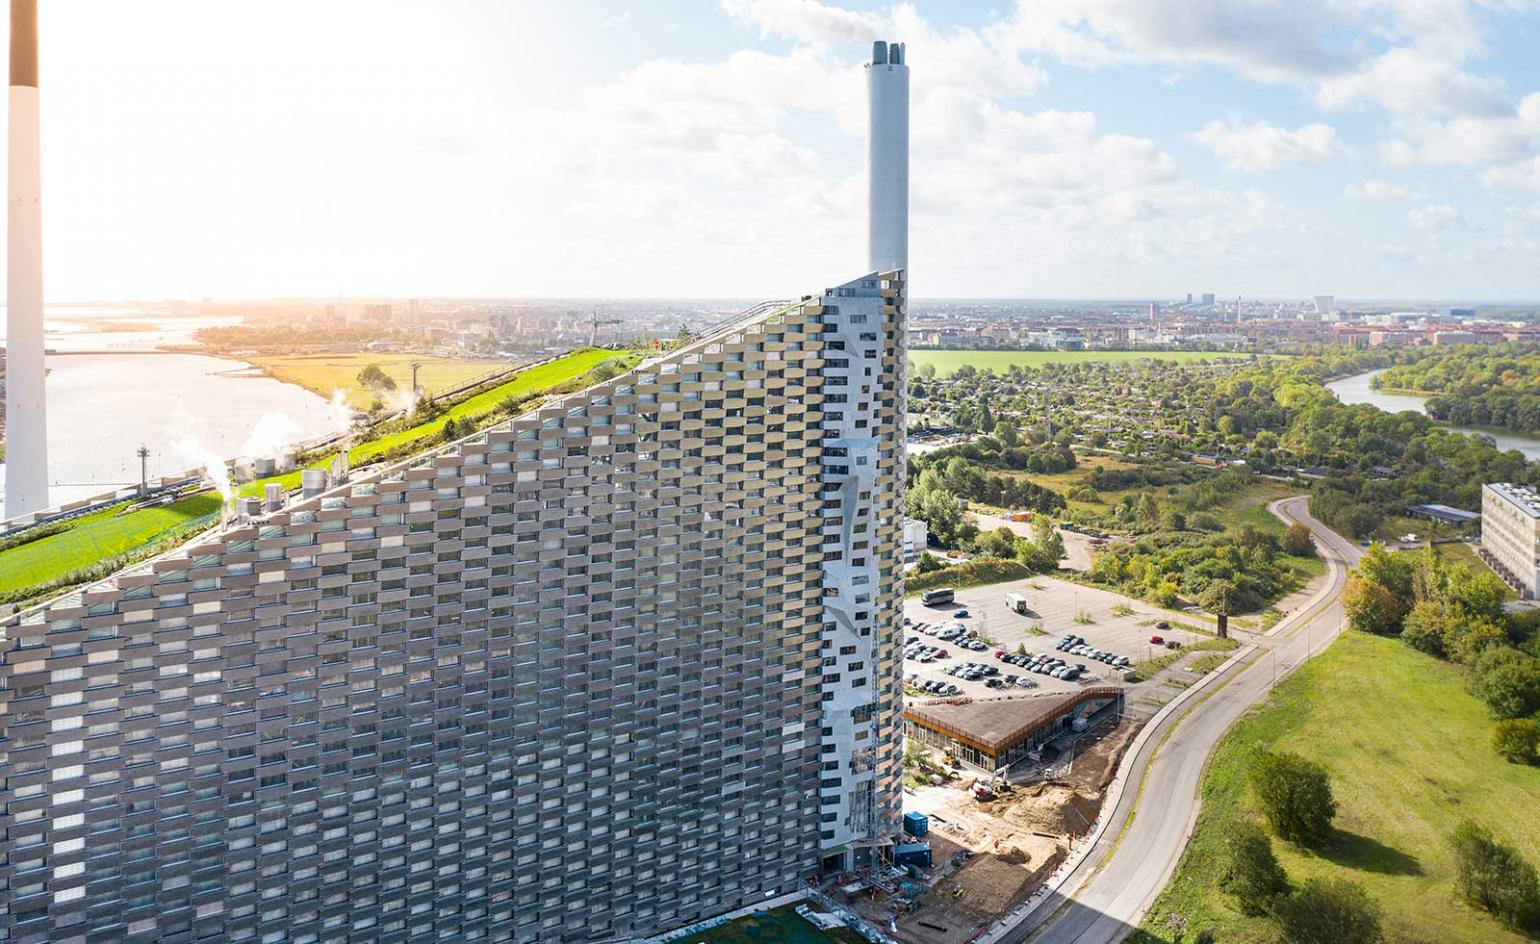 The C40 World Mayors Summit flags Copenhagen as one of the greenest cities in Europe